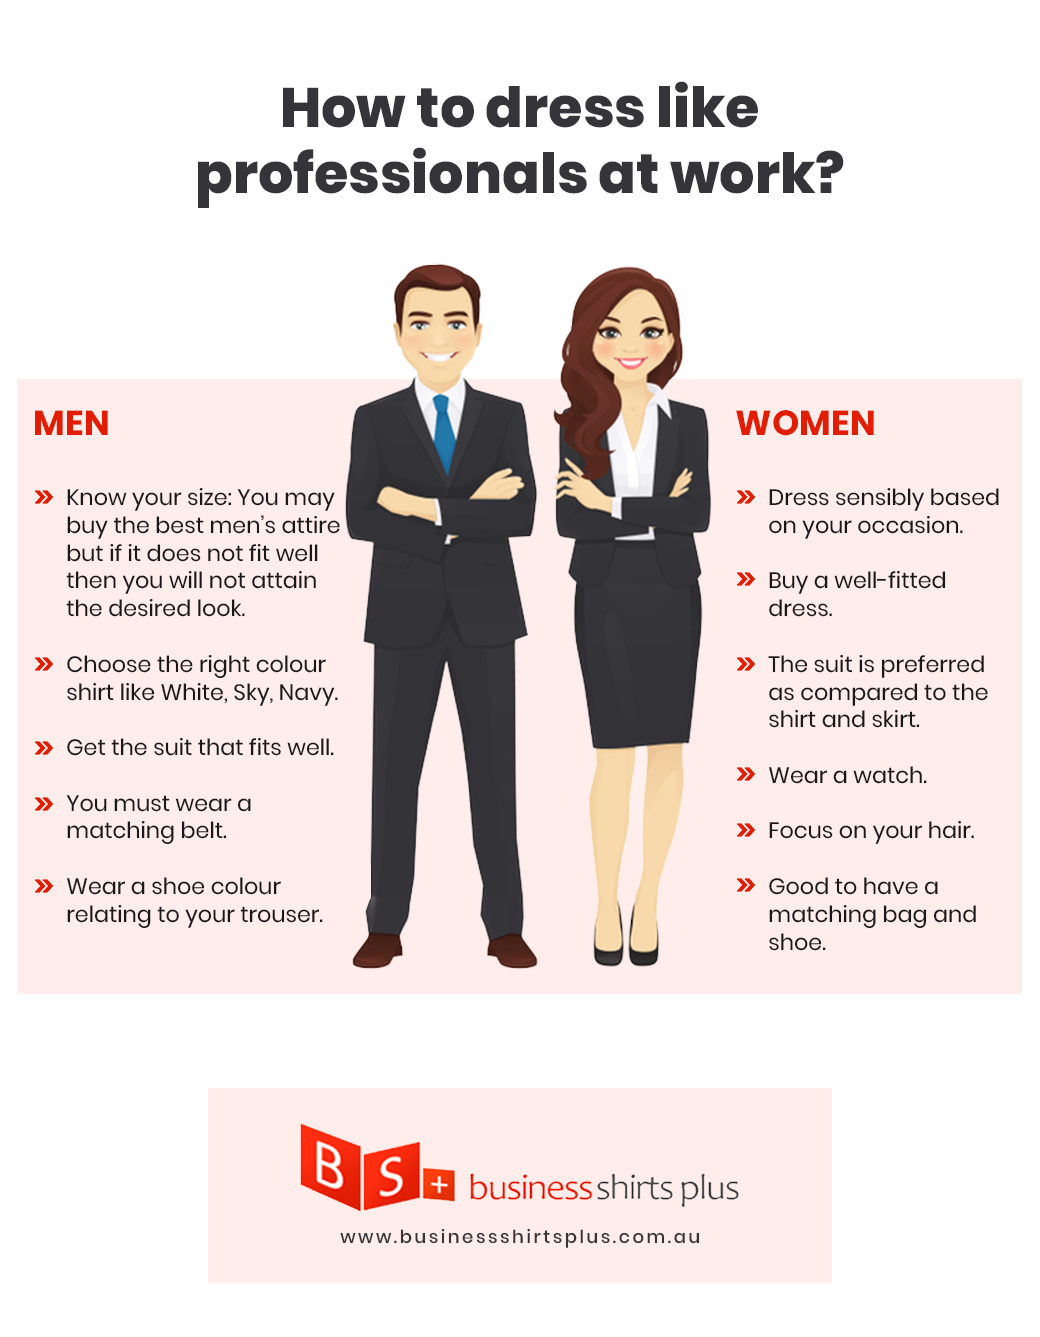 How to dress like professionals